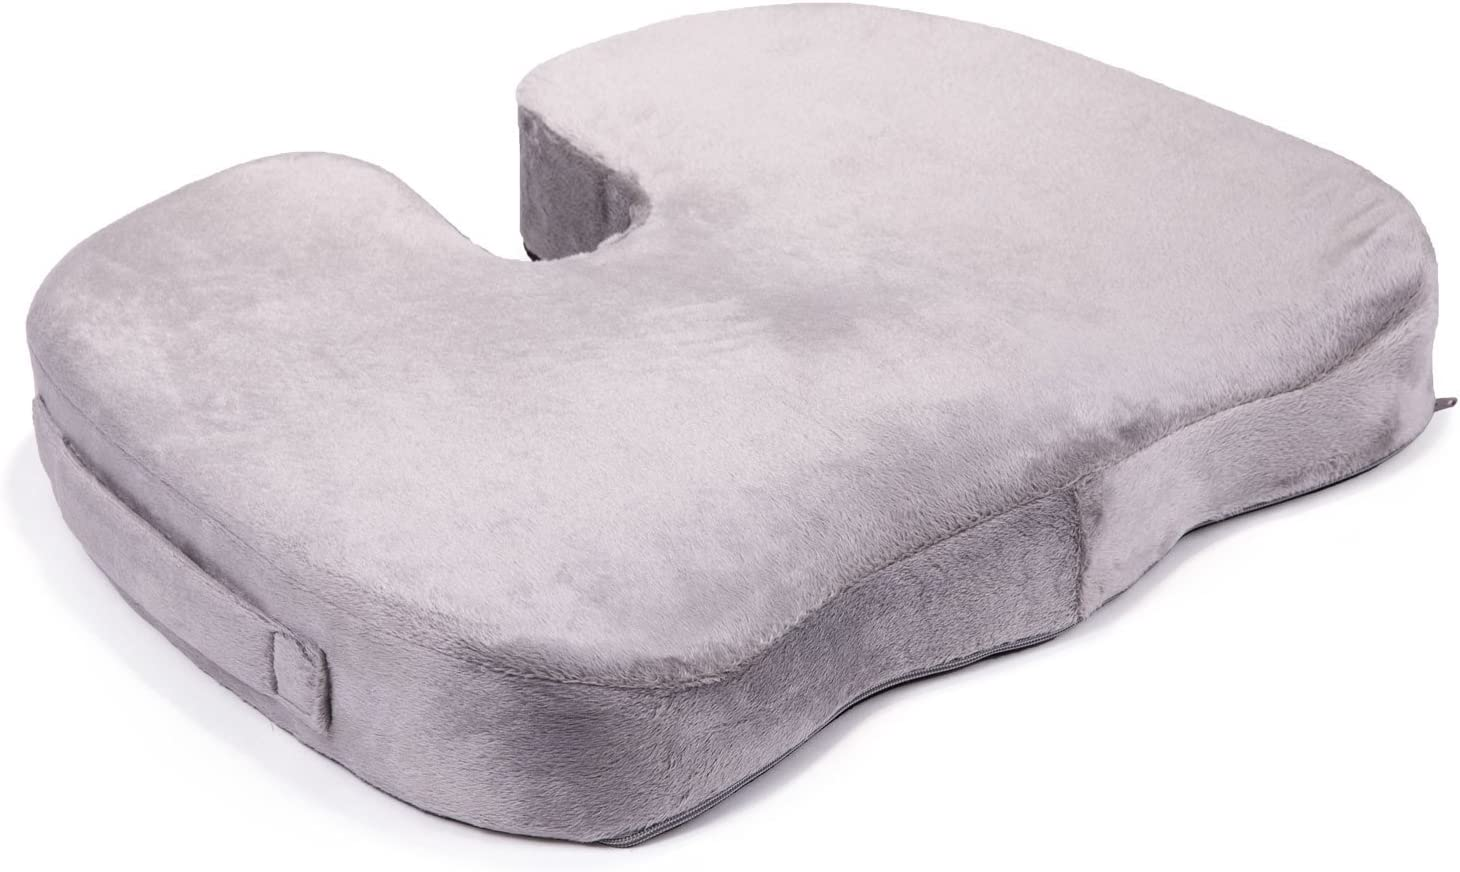 DR. FOAM Orthopedic Memory Foam Seat Cushion with Ergonomic Tailbone Support Groove for Back Pain and Sciatica Relief